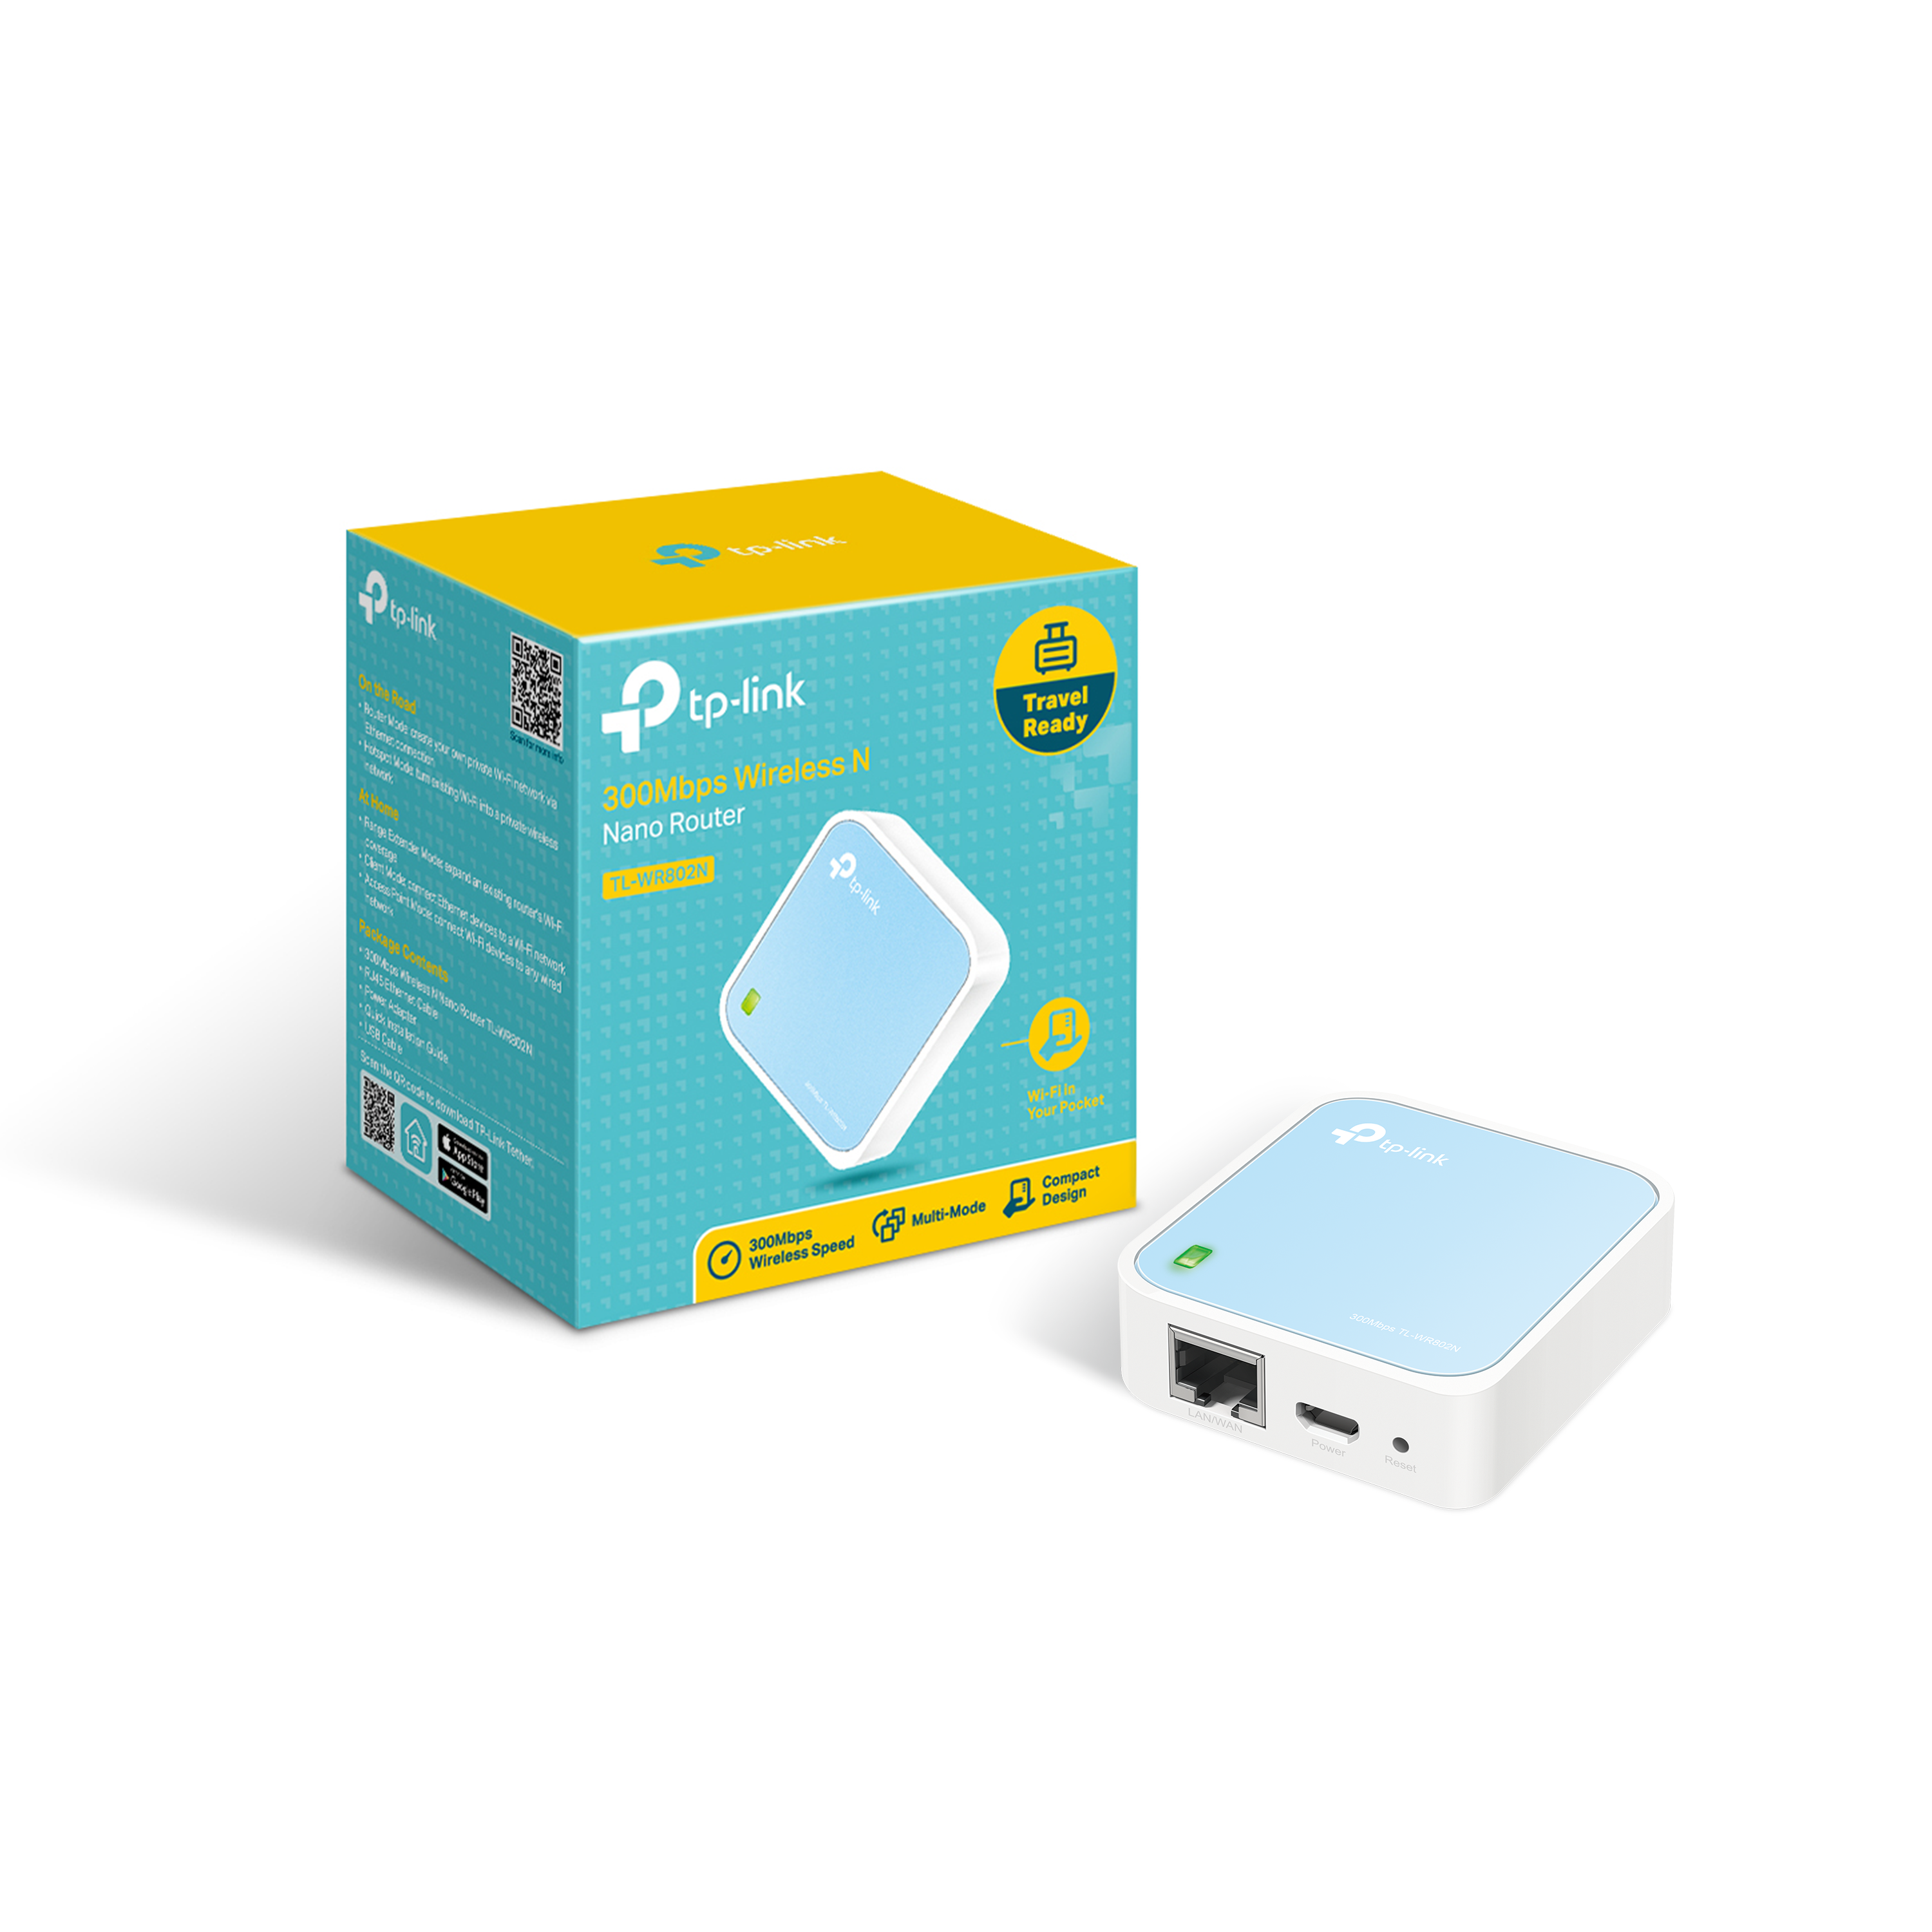 TP-Link N300 Wireless WiFi Nano Travel Router with Range Extender/Access Point/Client/Bridge Modes (TL-WR802N)